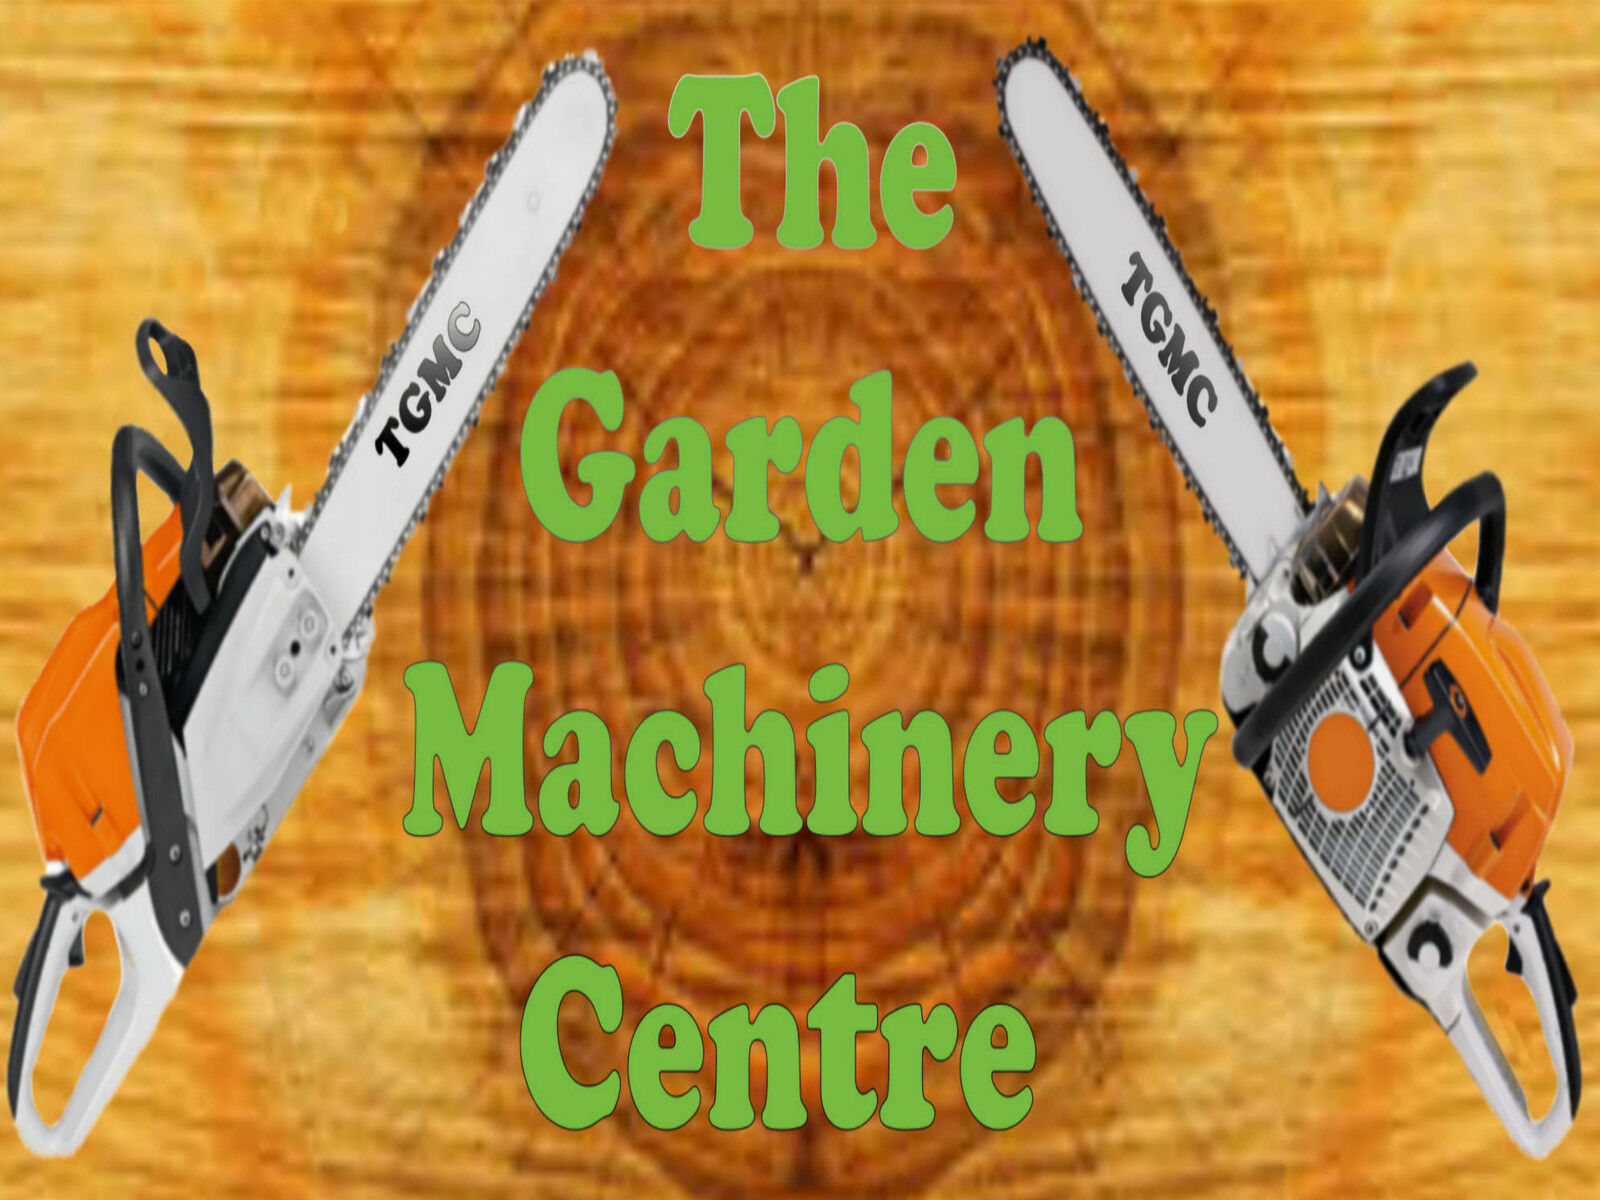 The-Garden-Machinery-Centre